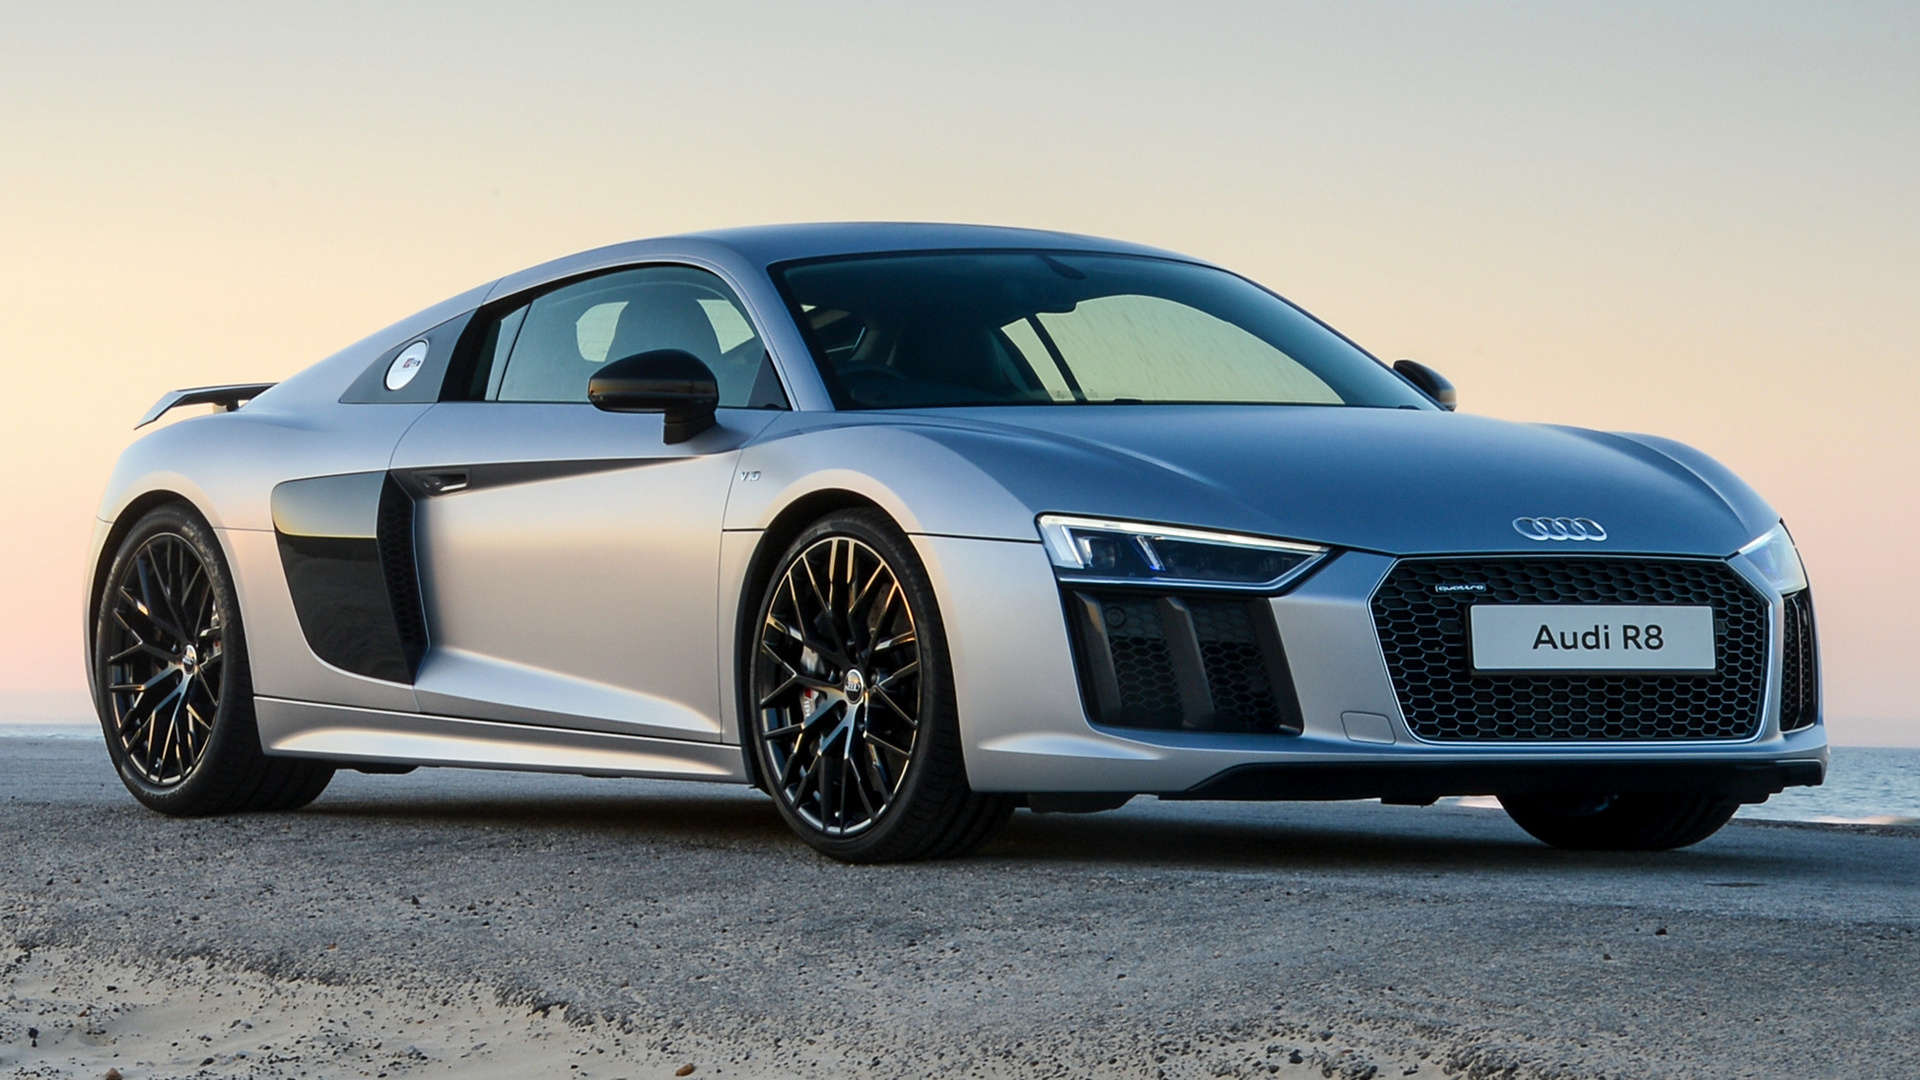 Audi R8 V10 plus 2016 ZA Wallpapers and HD Images   Car 1920x1080